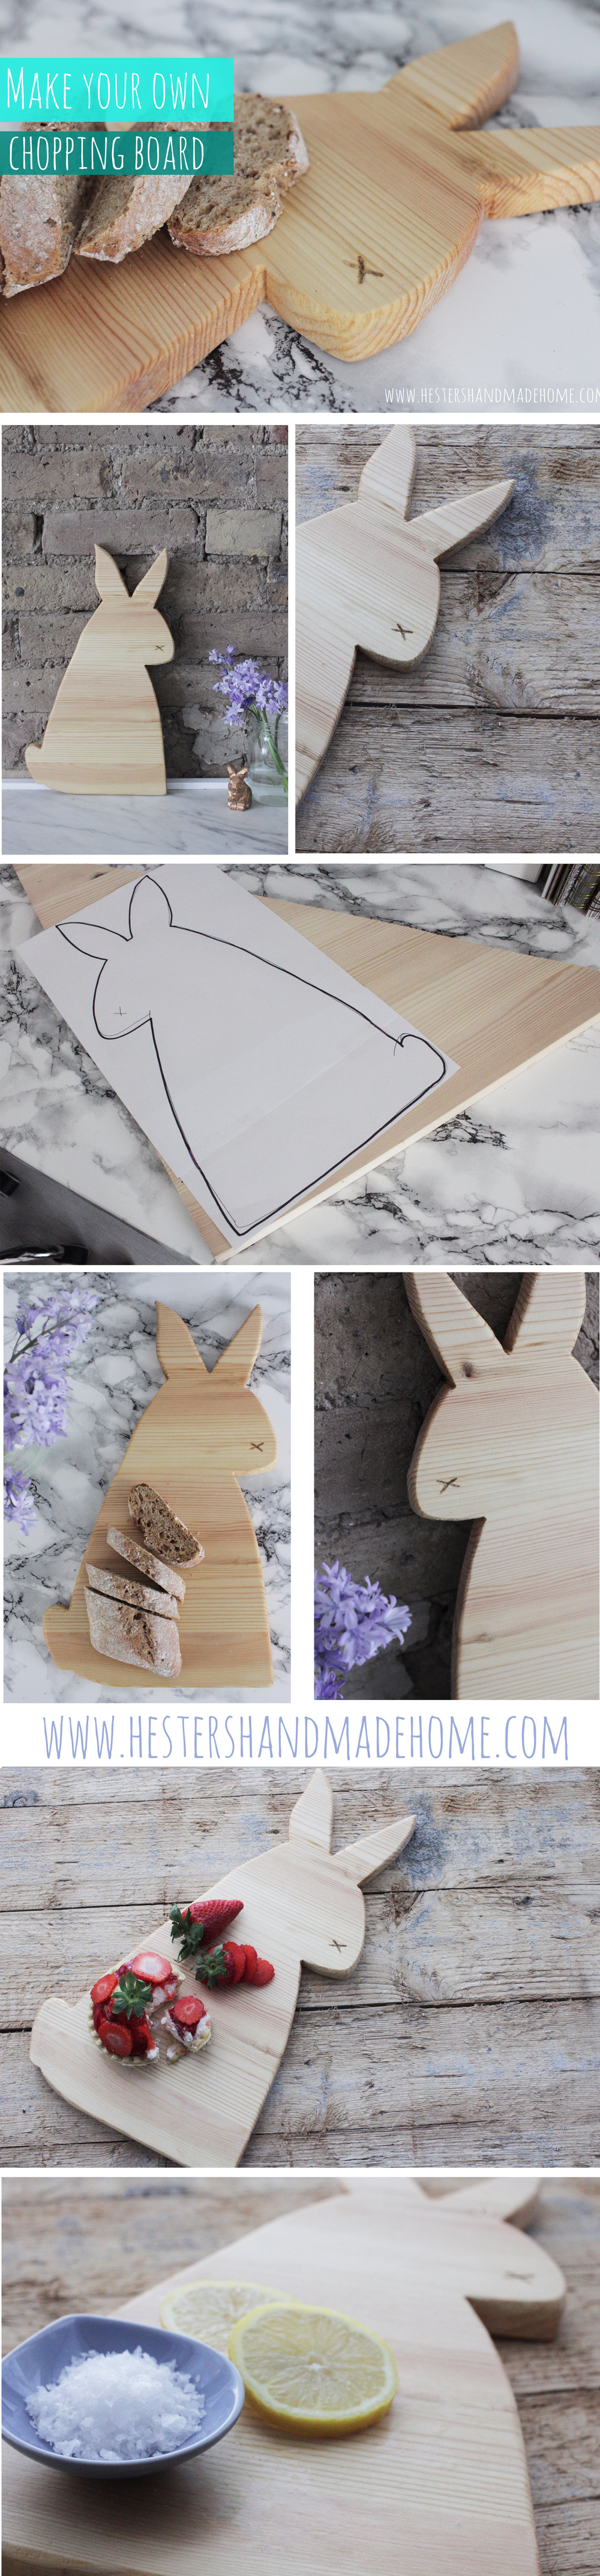 Make your own chopping board, tutorial by Hester's Handmade Home